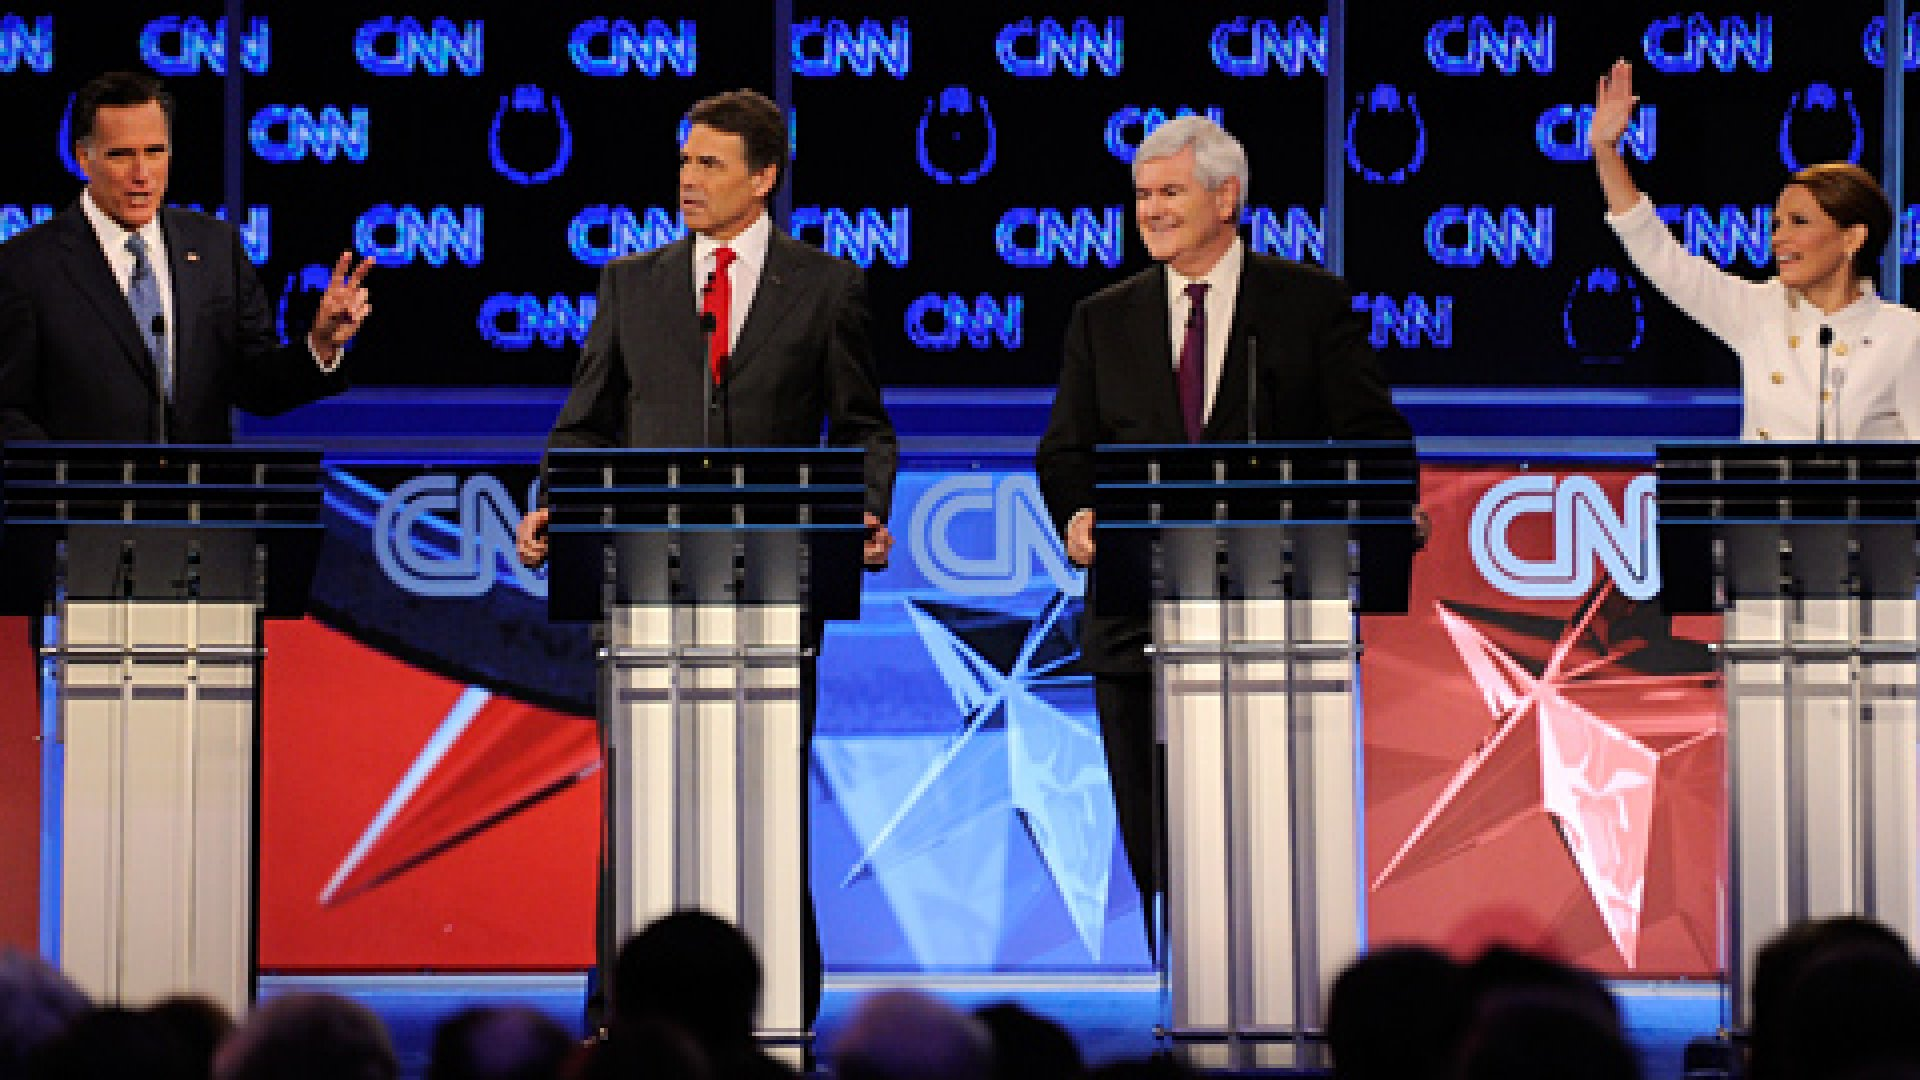 <strong>CONTENDERS</strong> Former Massachusetts Gov. Mitt Romney, Texas Gov. Rick Perry, former Speaker of the House Newt Gingrich (L) and U.S. Rep. Michele Bachmann (R-MN) participate during the Republican presidential debate, October 18, 2011 in Las Vegas, Nevada.